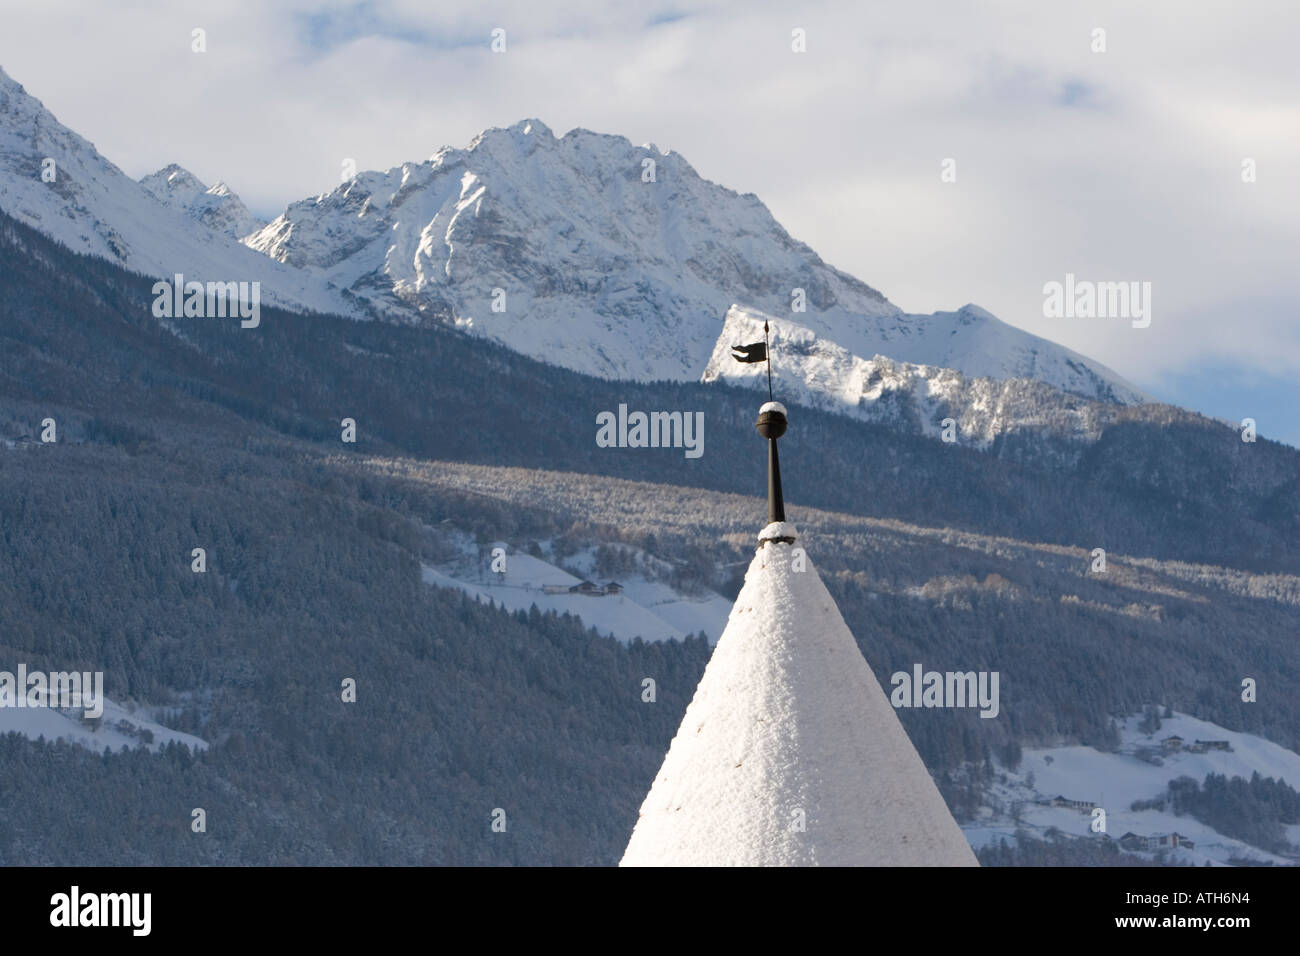 Weathervane on turret of Rennaissance Castle Coldrano, Italy, in winter Stock Photo